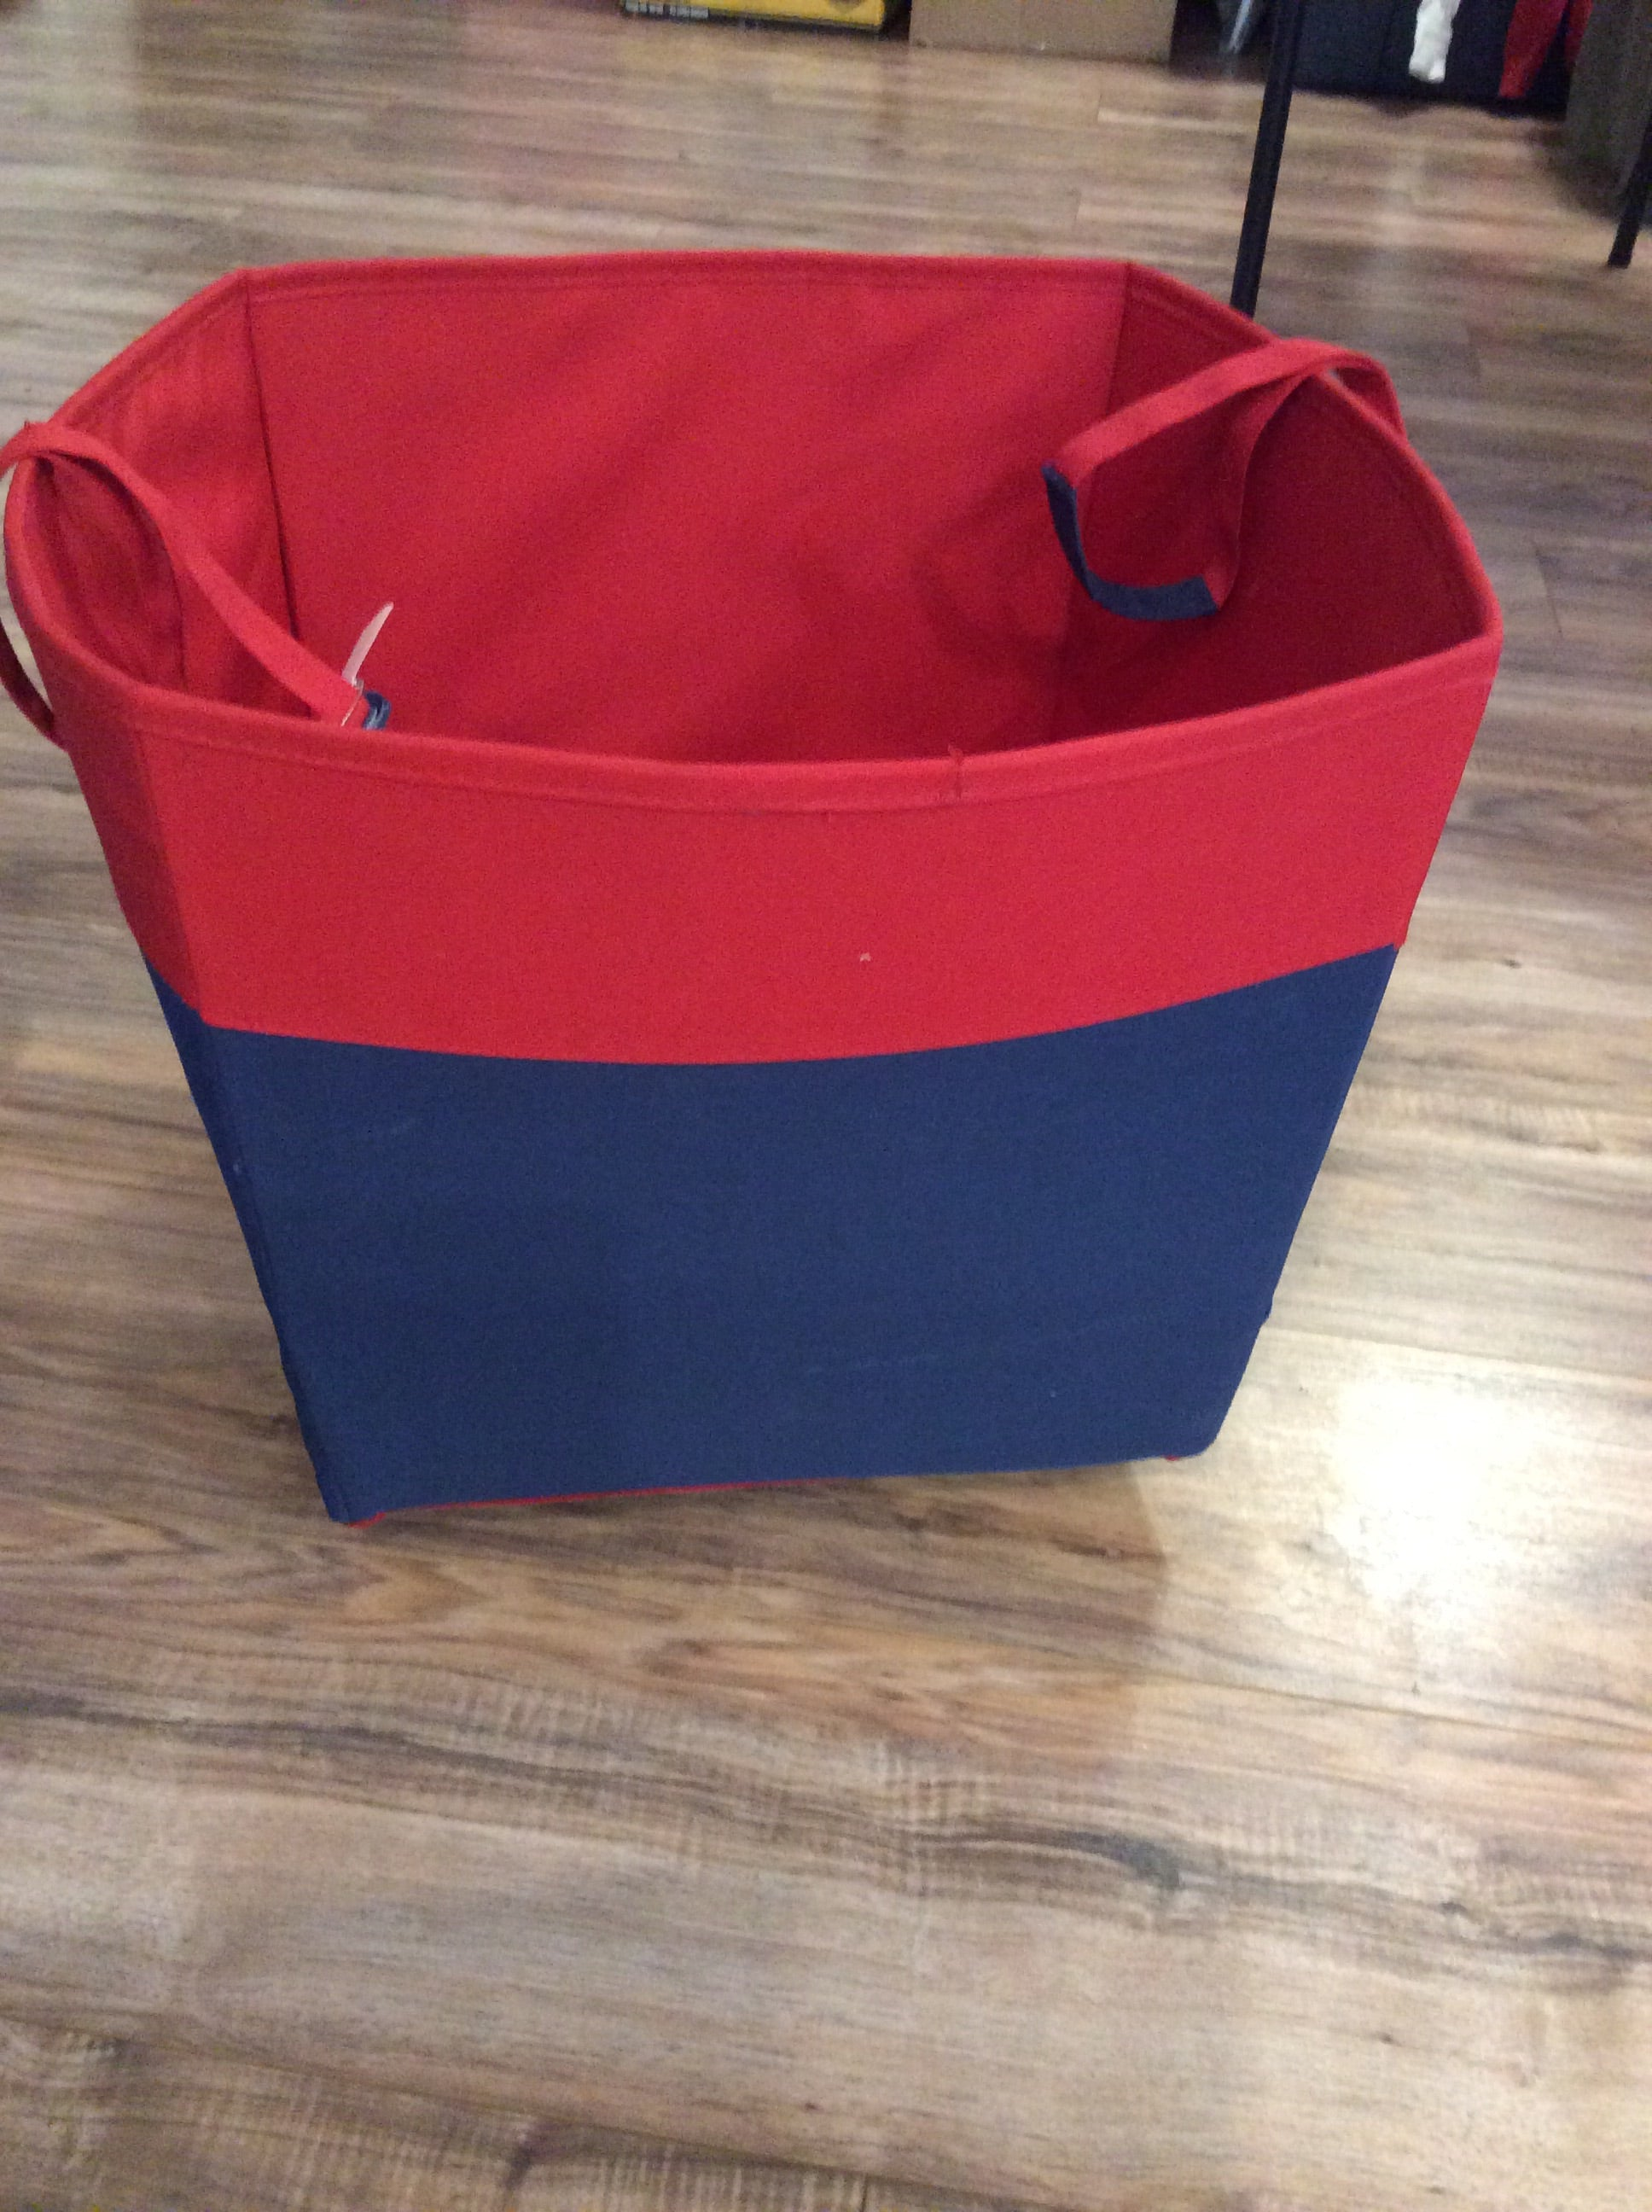 TARGET Navy blue/red wheeled storage bin with handles